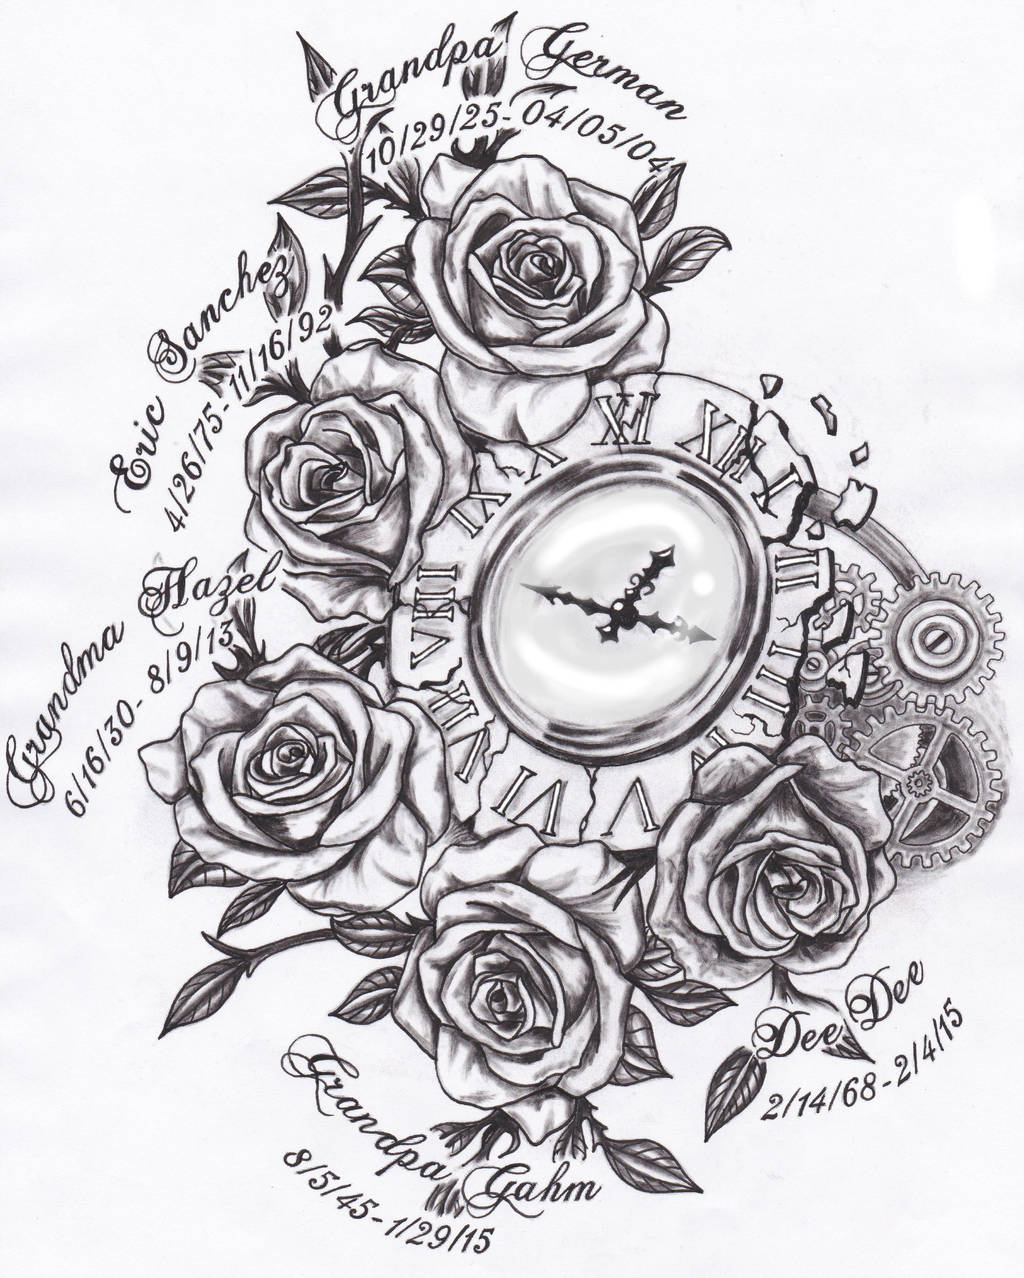 60369dbf68a64 Broken Clock And Roses Tattoo Design By Spellfire42489 On Deviantart